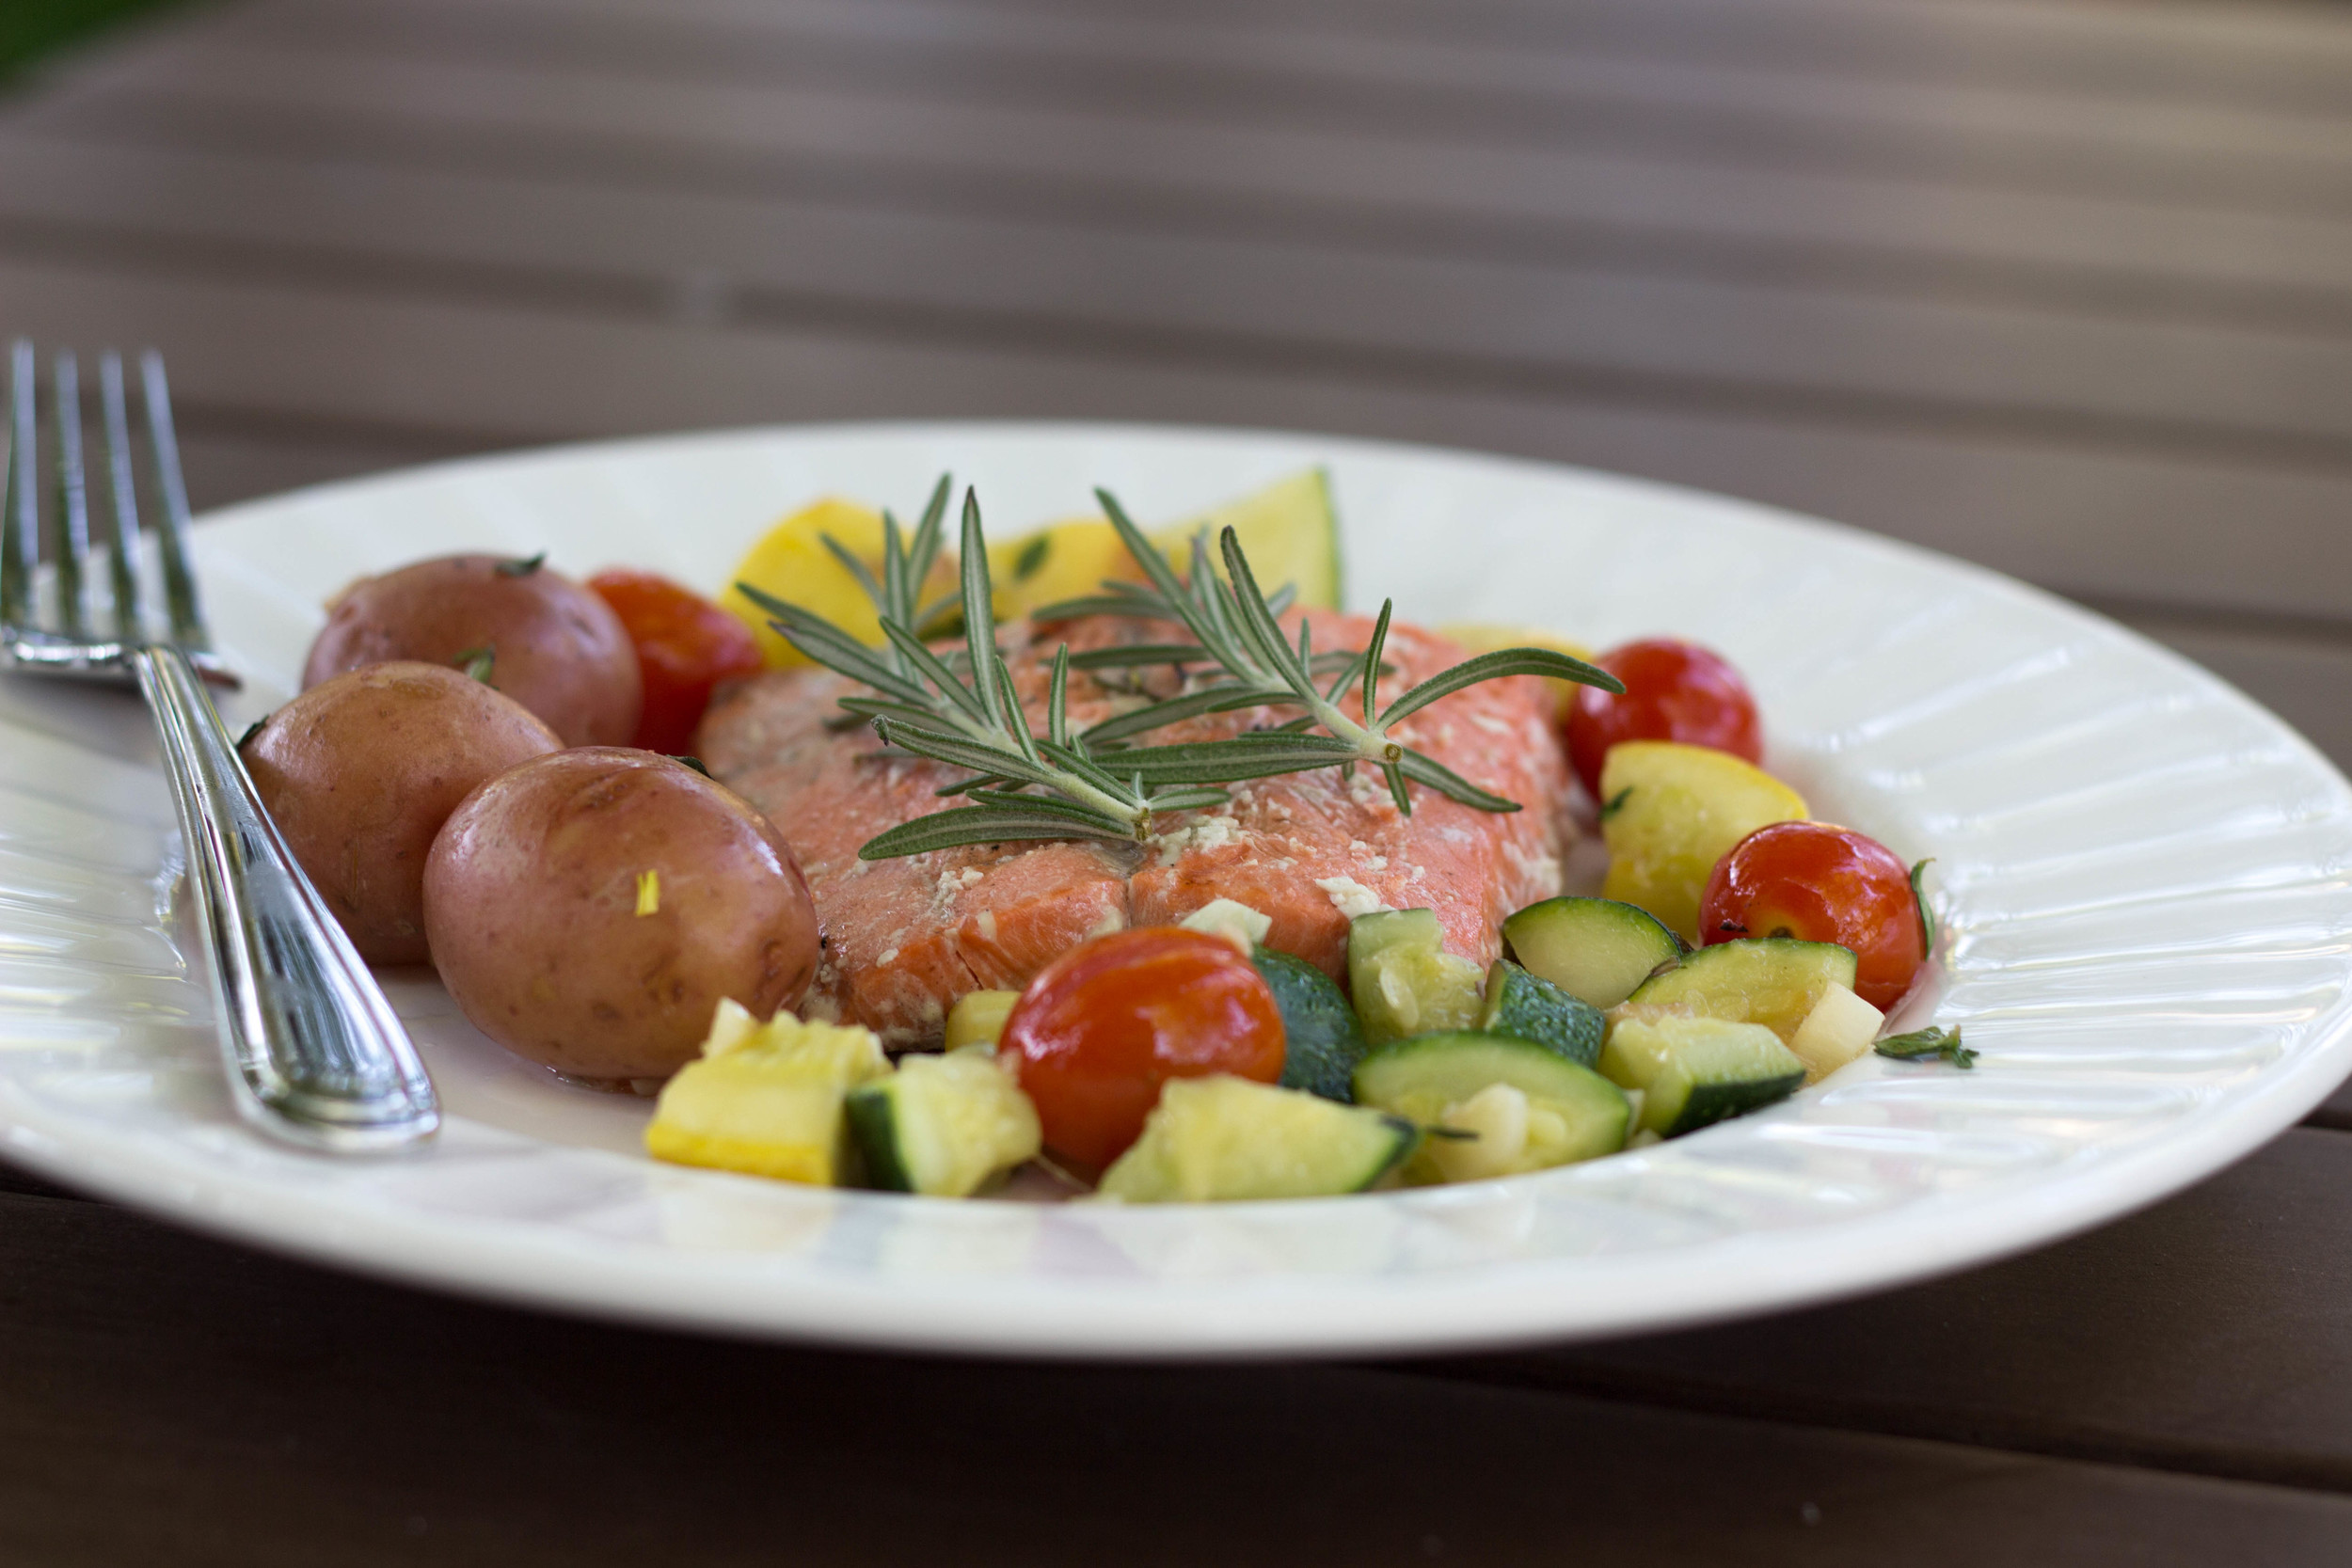 smoked rosemary salmon and summer veggies, summer time dinner recipe, salmon, veggies, grilling, Cooking Gift Set Co., rosemary sprigs, garlic cloves, thyme, petite potatoes, summer squash, zucchini, cherry tomatoes, smoked sea salt, recipe for salmon, perfectly cooked salmon,